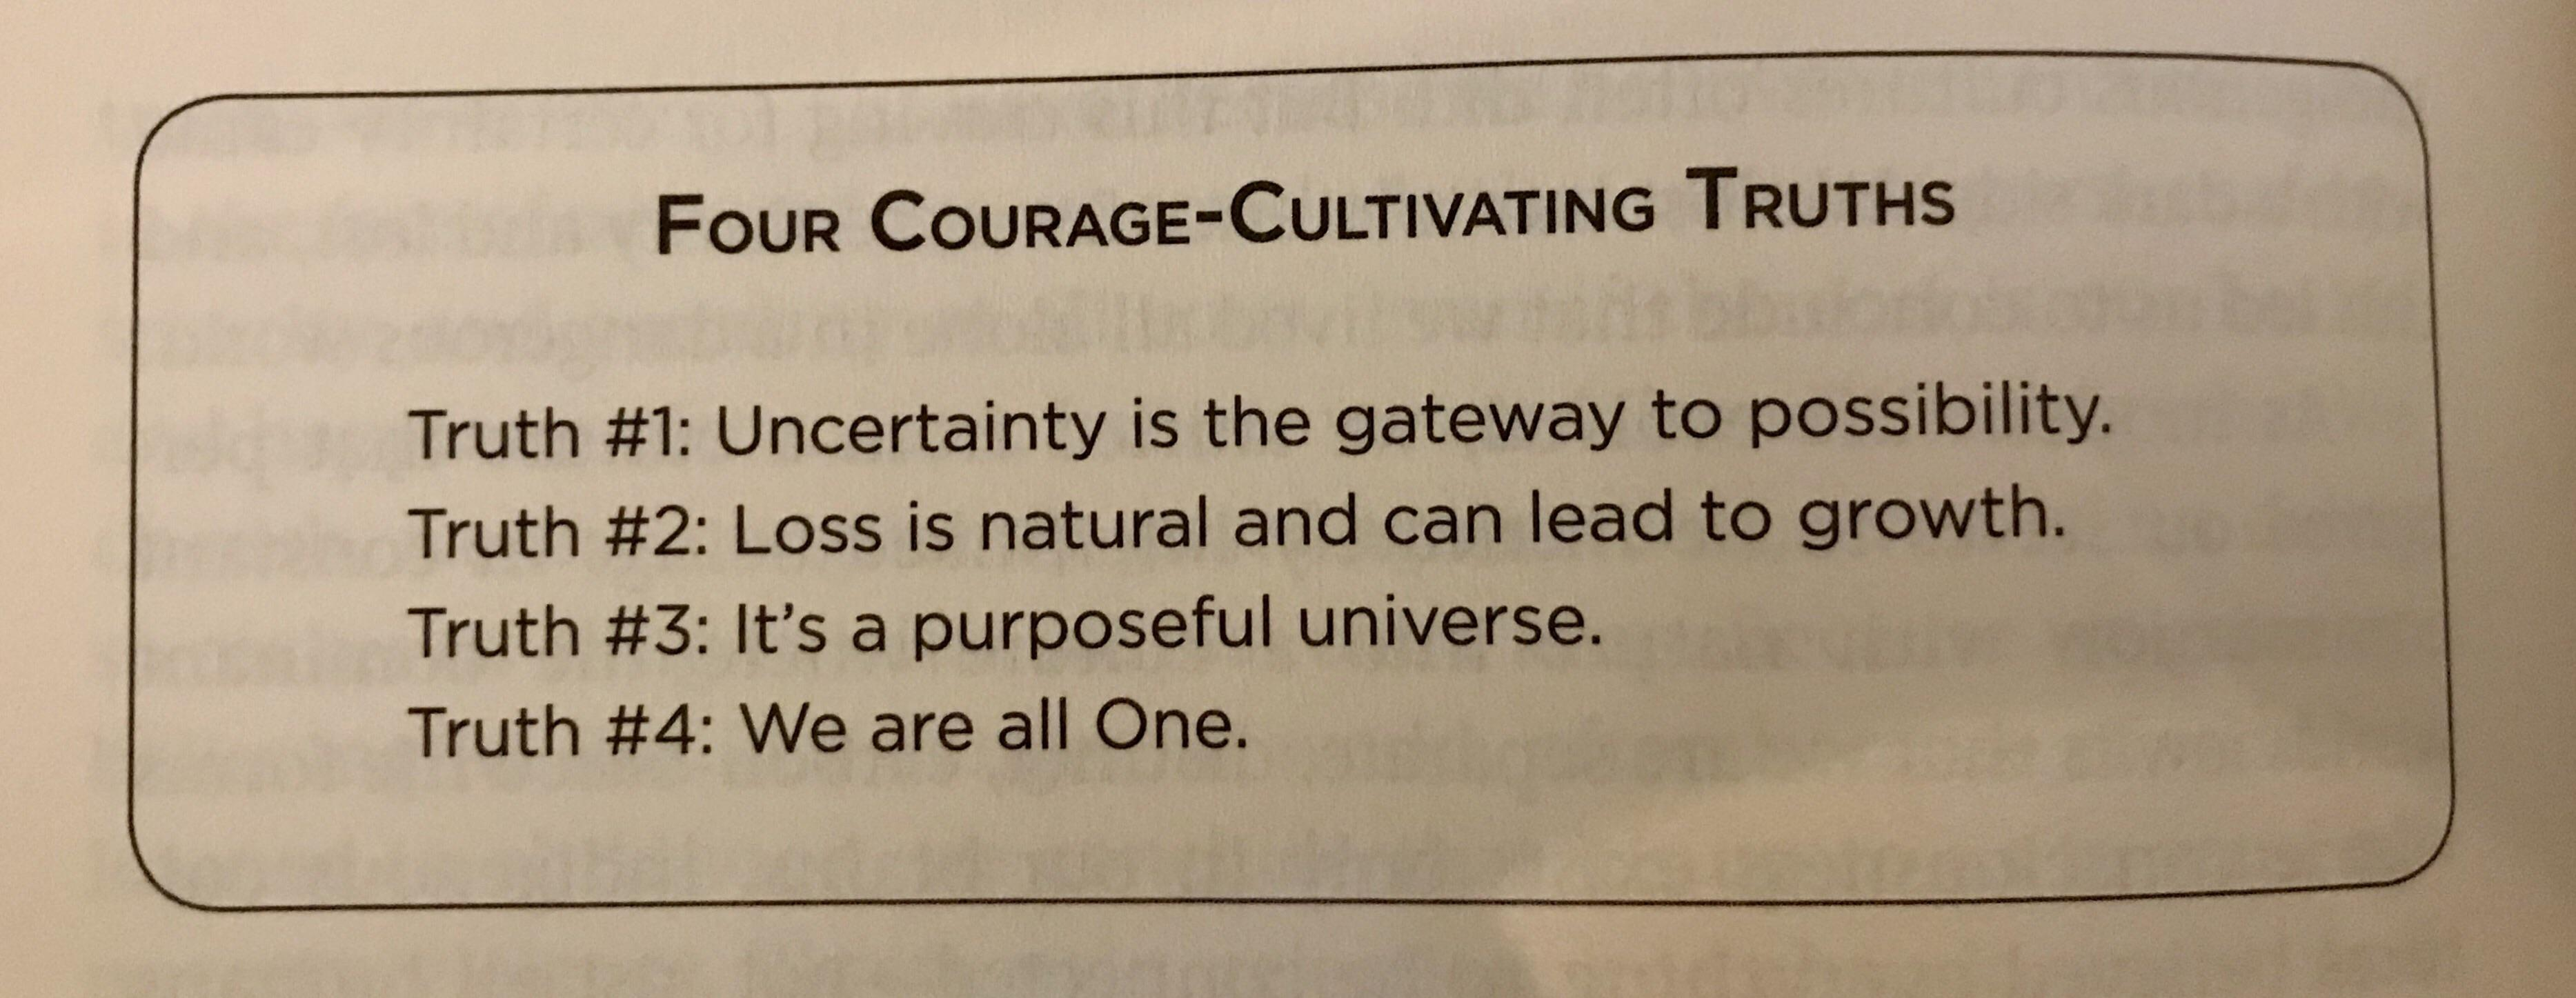 [Image] Uncertainty is the Gateway to Possibility